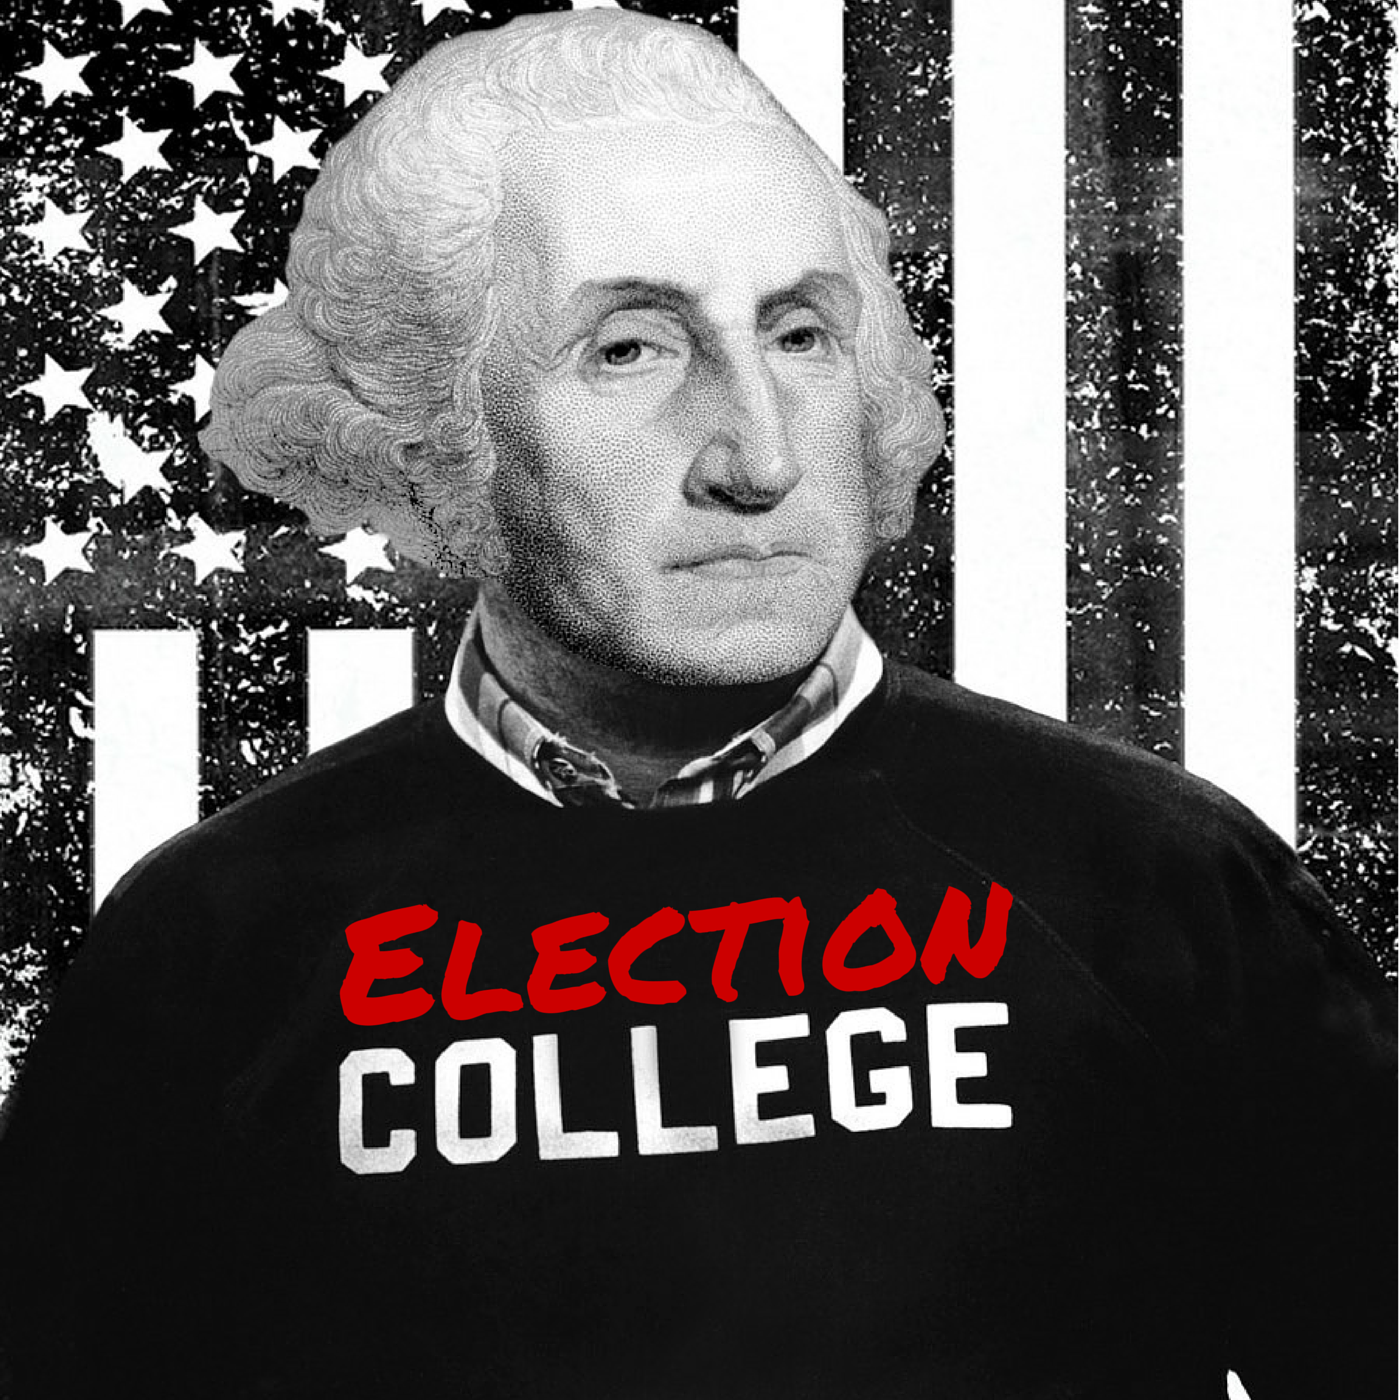 William Seward - Part 1 | Episode #238 | Election College: United States Presidential Election History